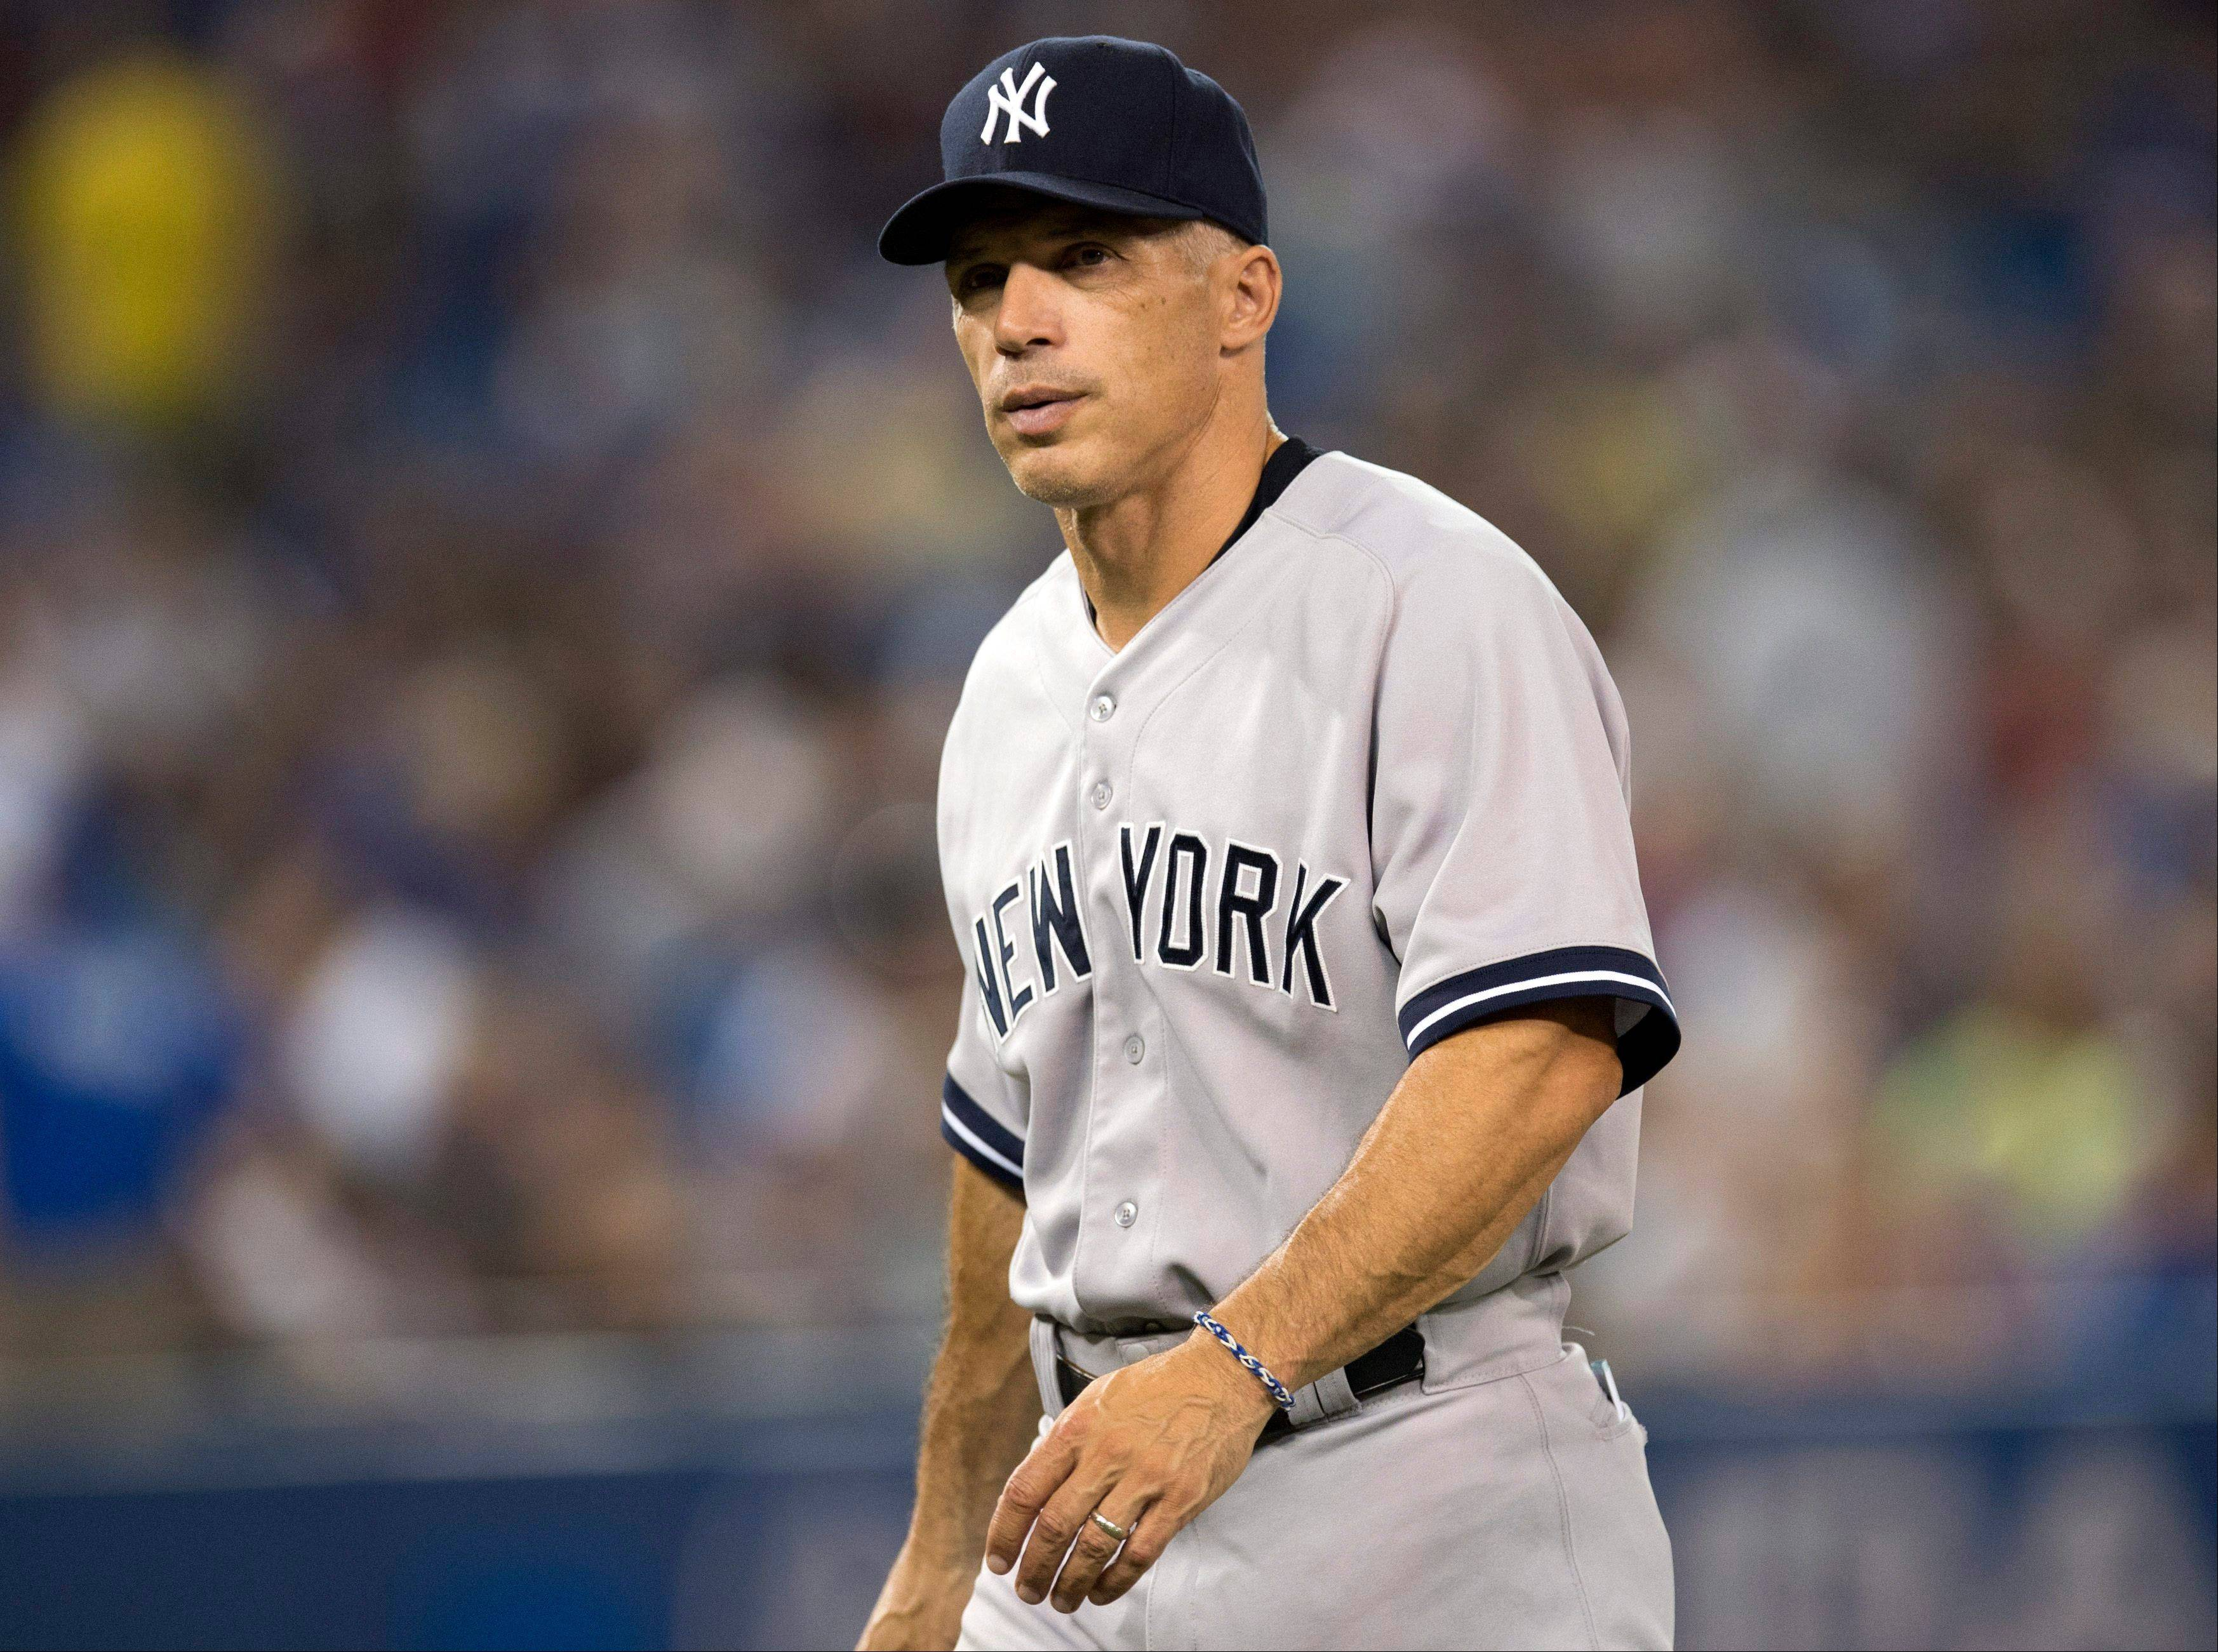 Although the Cubs wanted to talk with him, Joe Girardi has signed a four-year contract extension to stay with the New York Yankees as their manager.